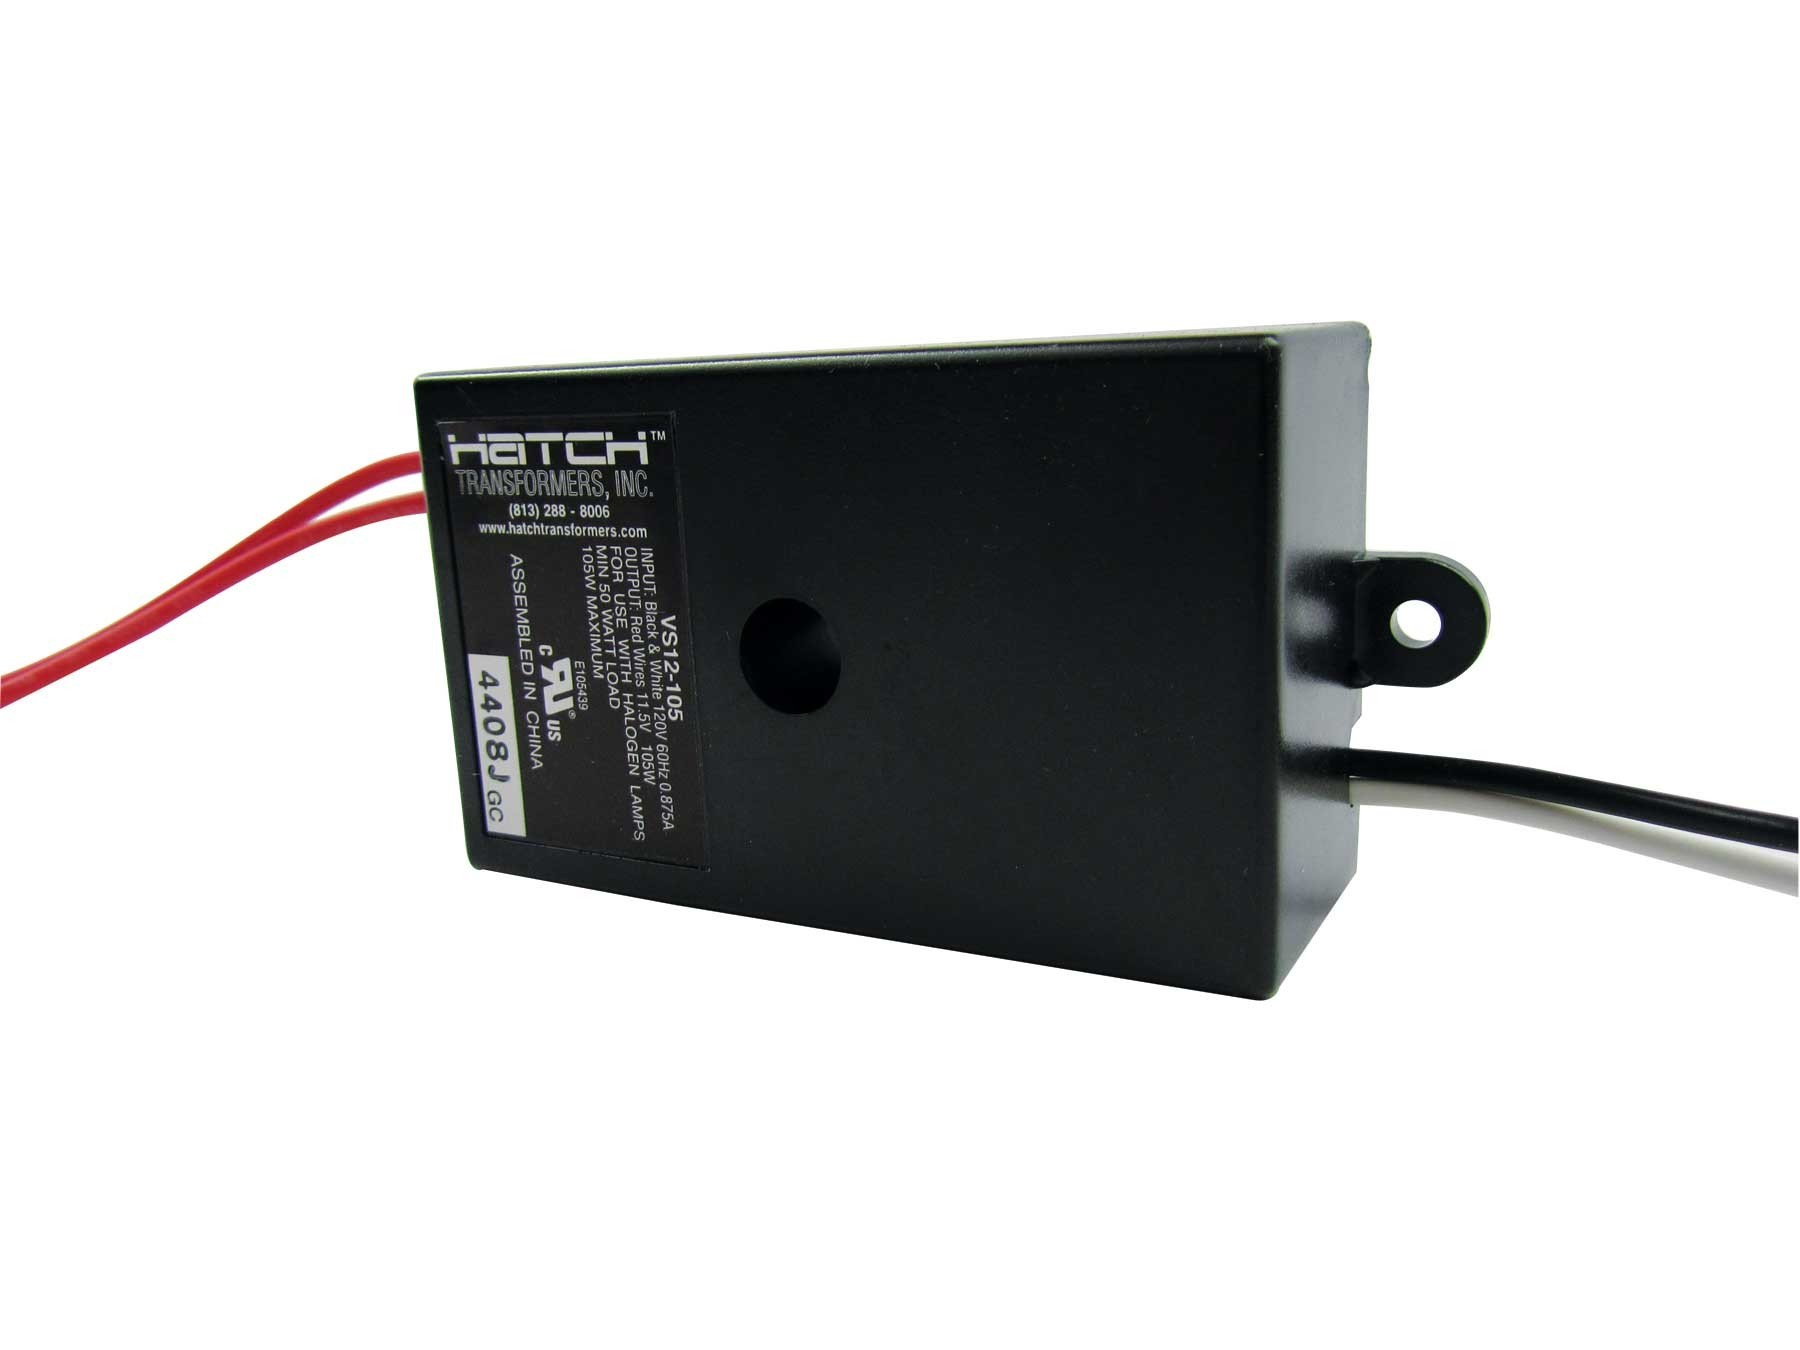 Hatch Transformers VS12-150JNW - 150W - 120V to 12V - With Feet - Leads Out Both Side - Electronic Low Voltage Transformer  sc 1 st  Lighting 2 Light Bulbs : low voltage transformer wiring - yogabreezes.com